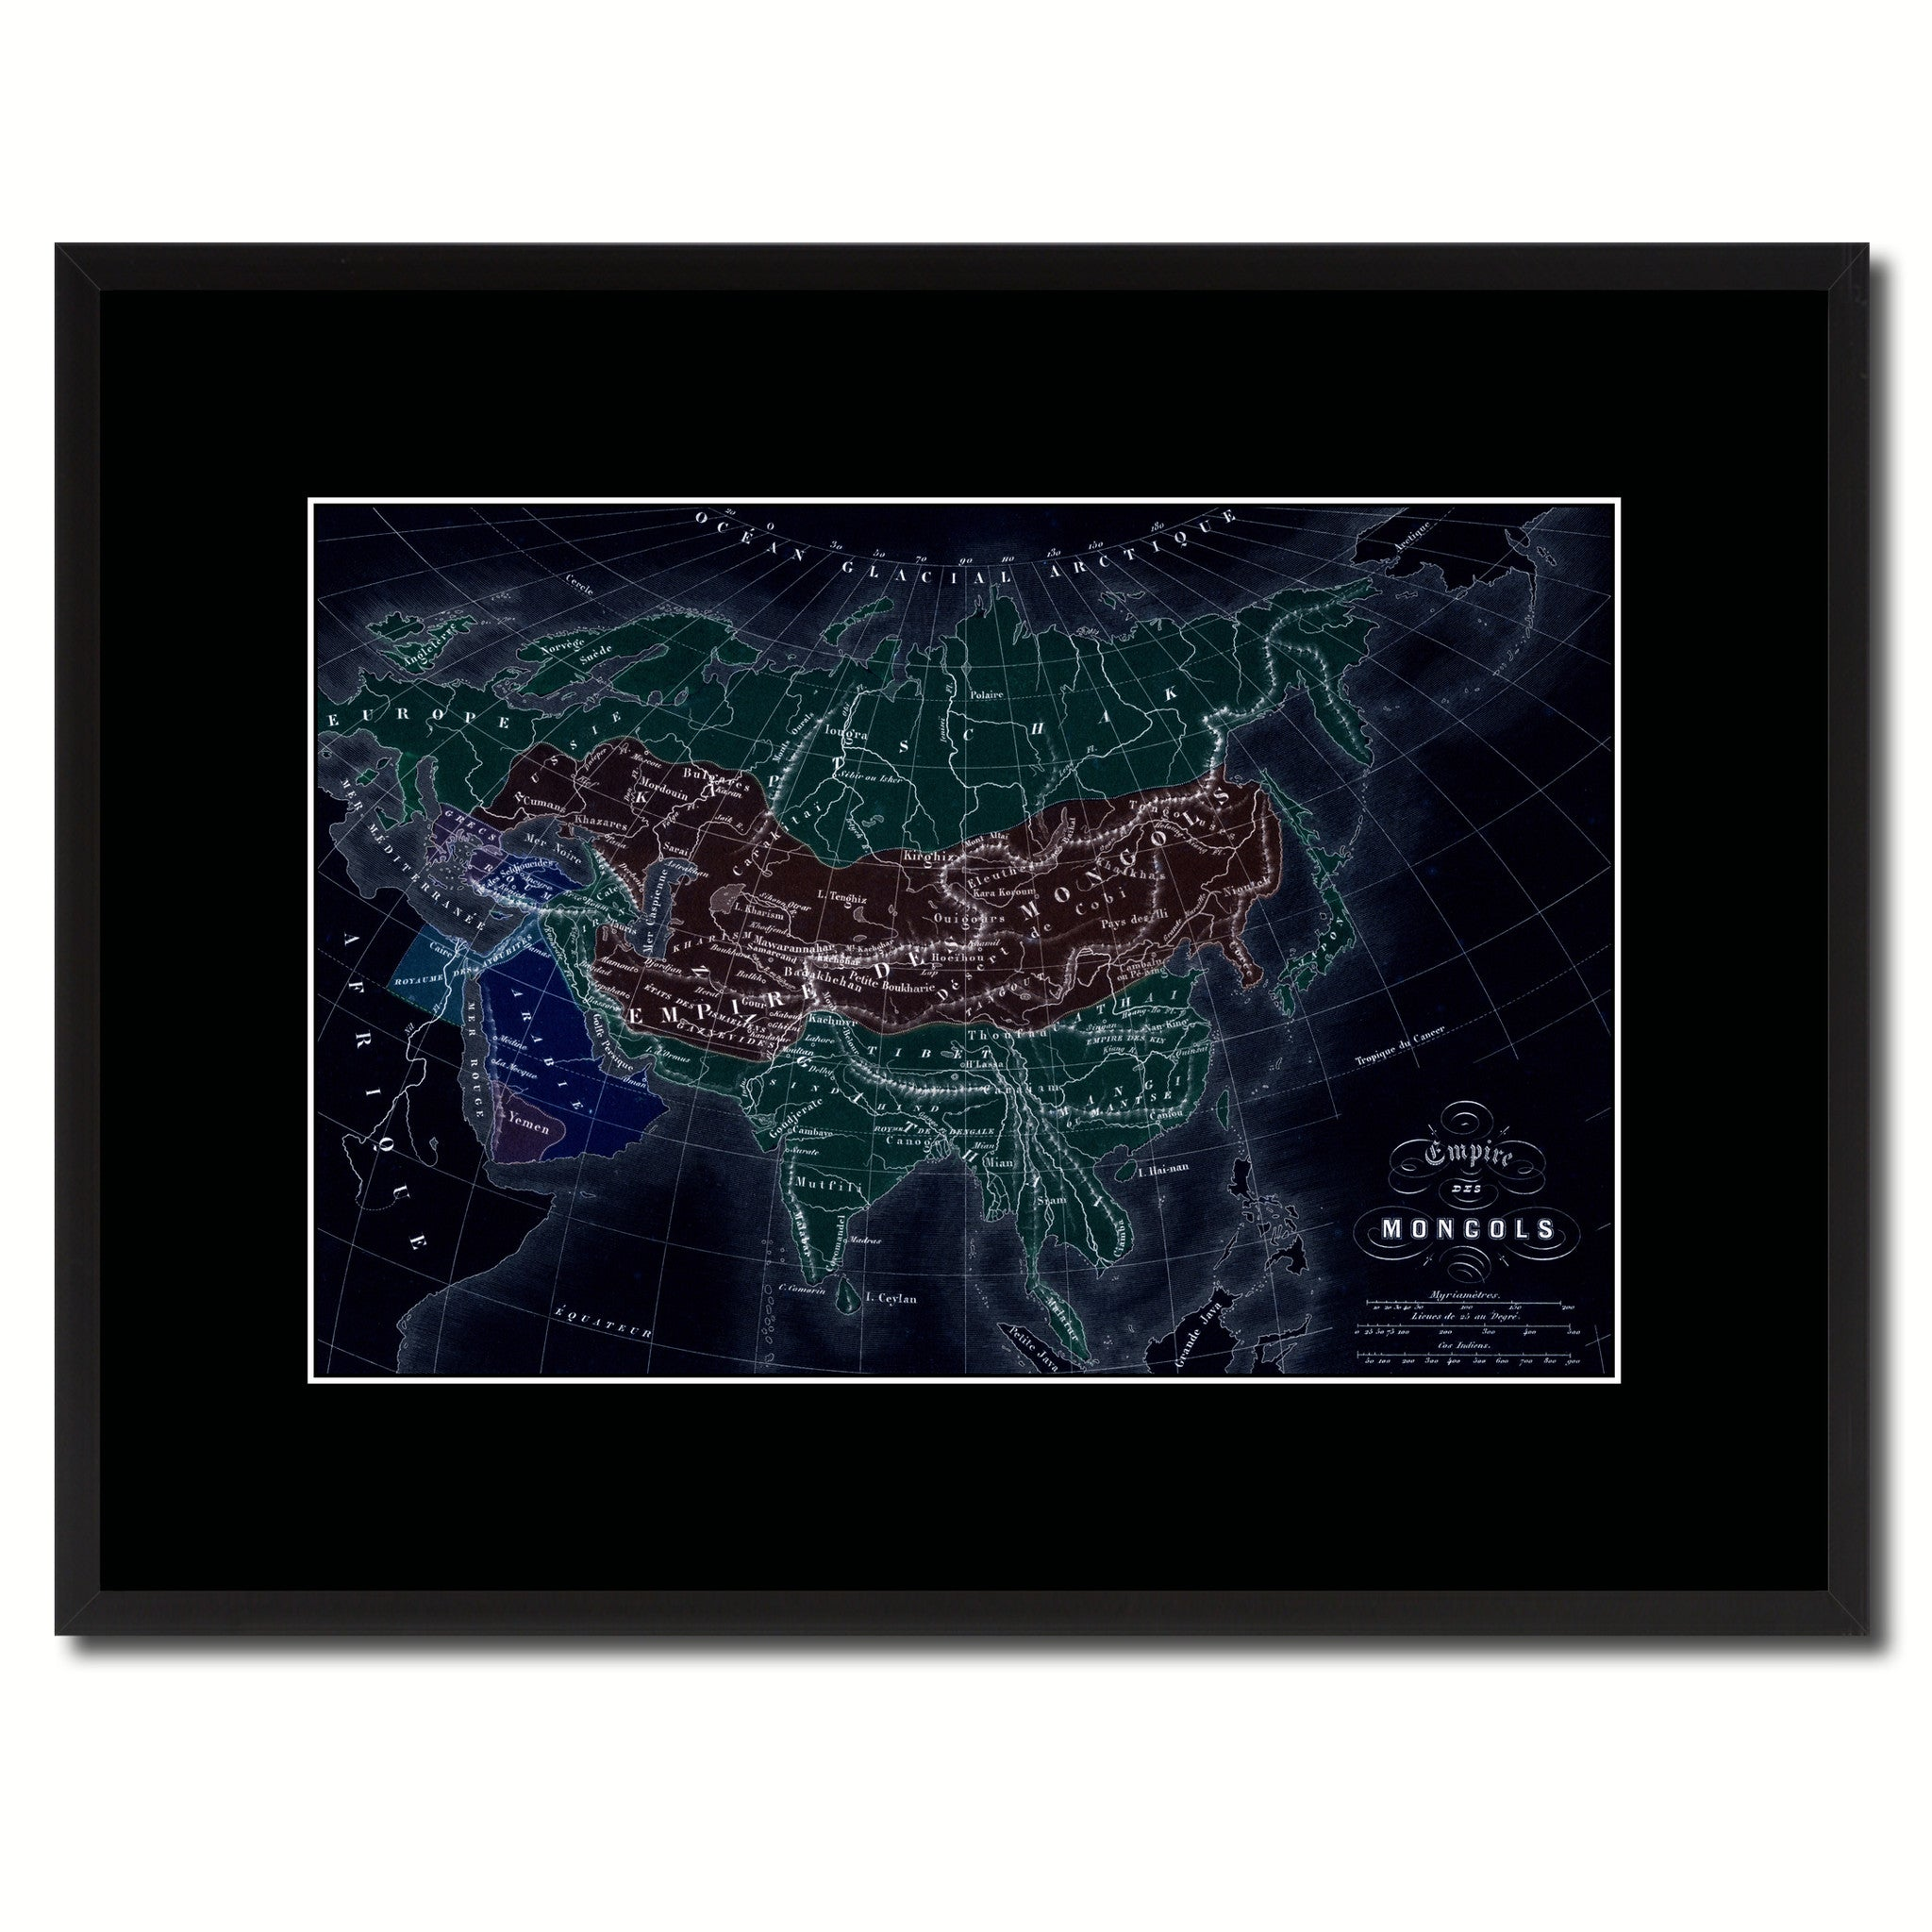 Mongolian Empire Asia Vintage Vivid Color Map Canvas Print, Picture Frame Home Decor Wall Art Office Decoration Gift Ideas